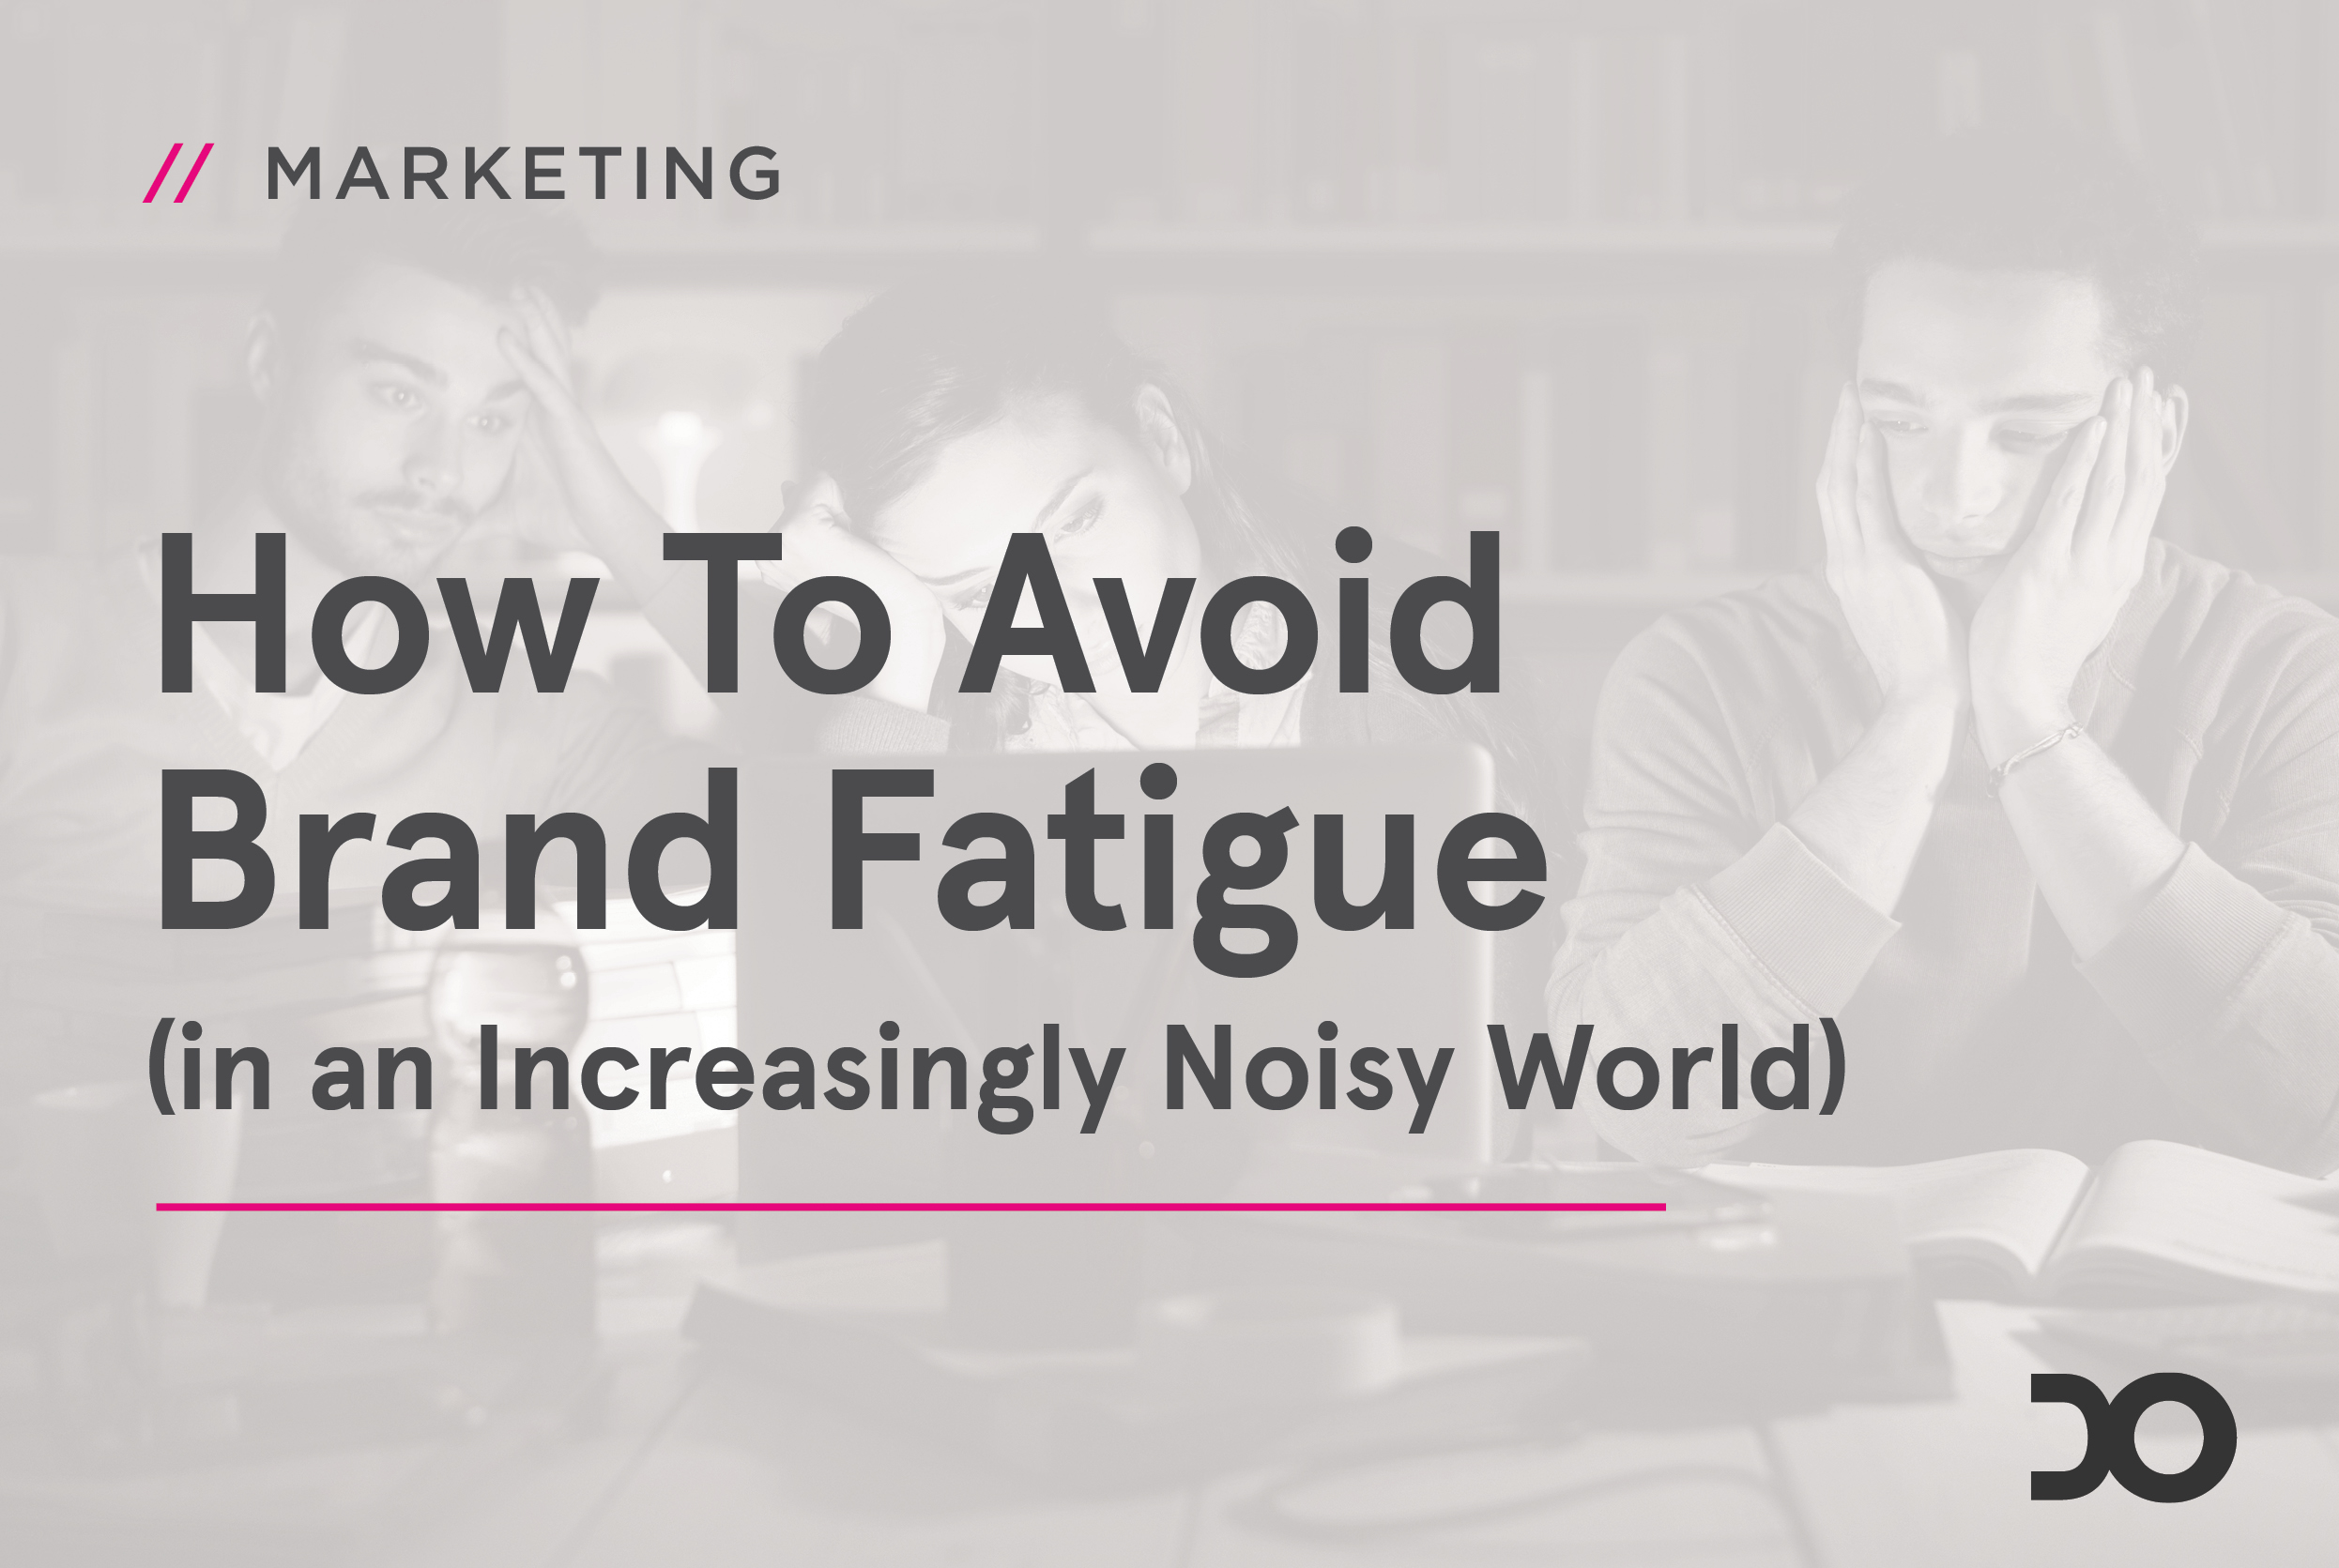 How to Avoid Brand Fatigue